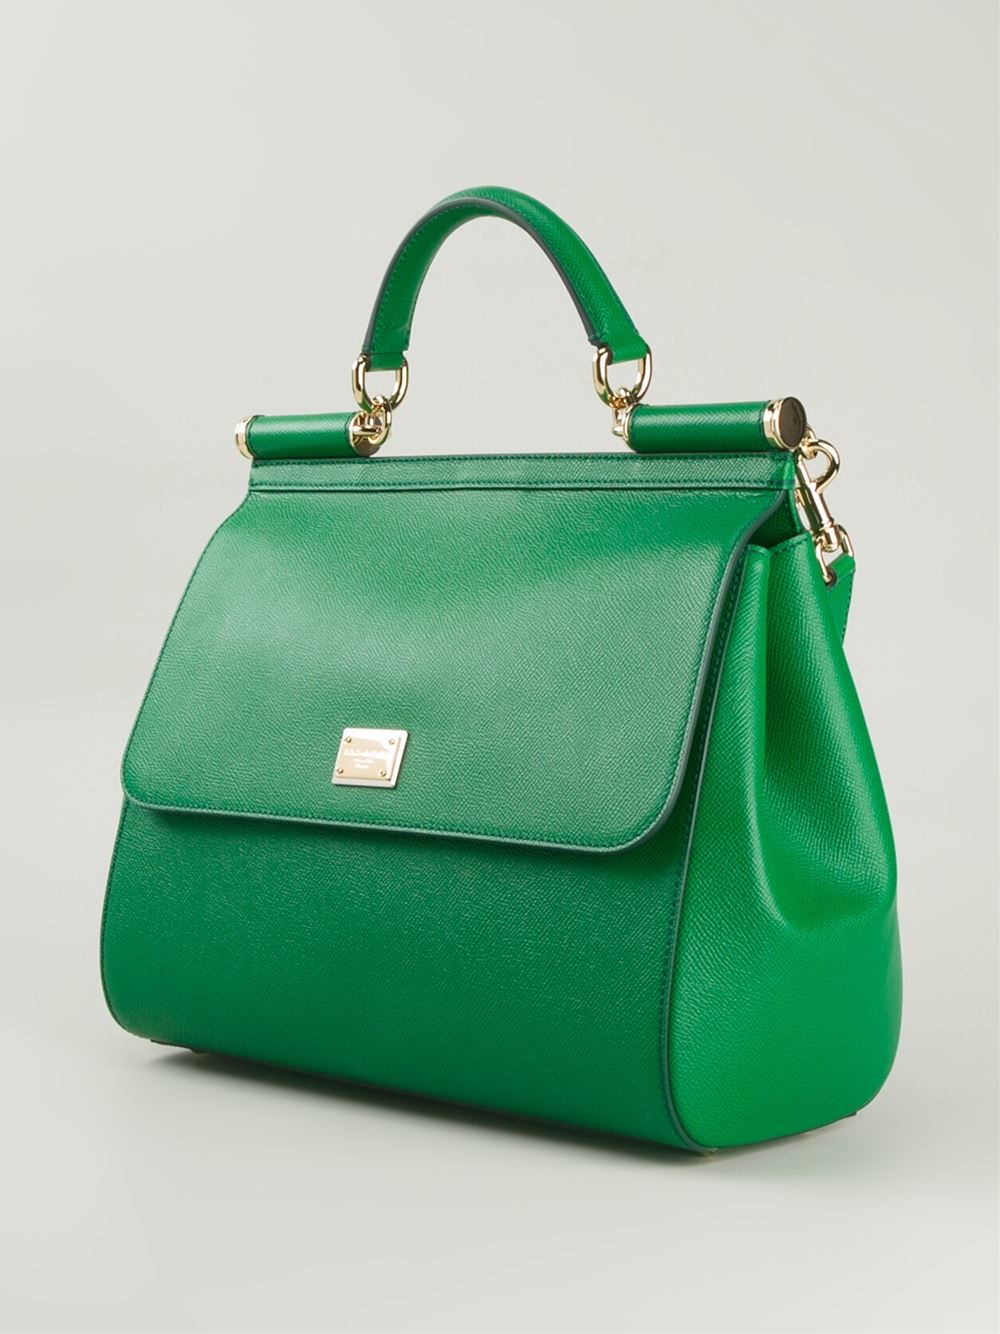 Lyst Dolce Gabbana Large Sicily Tote In Green eb0ded47fe